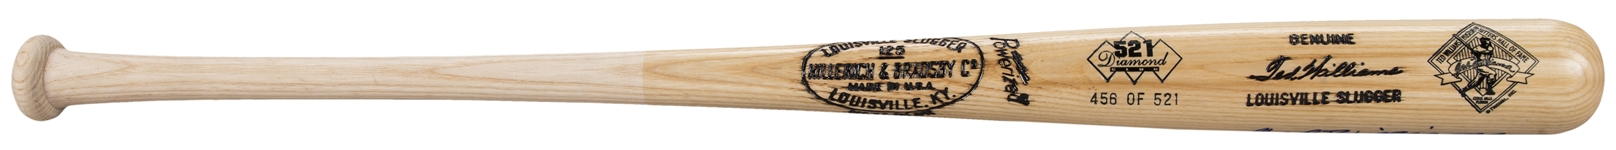 Ted Williams Signed Hillerich & Bradsby 521 Diamond Club Commemorative Bat -LE 456/521 (Doerr Family LOA & JSA)